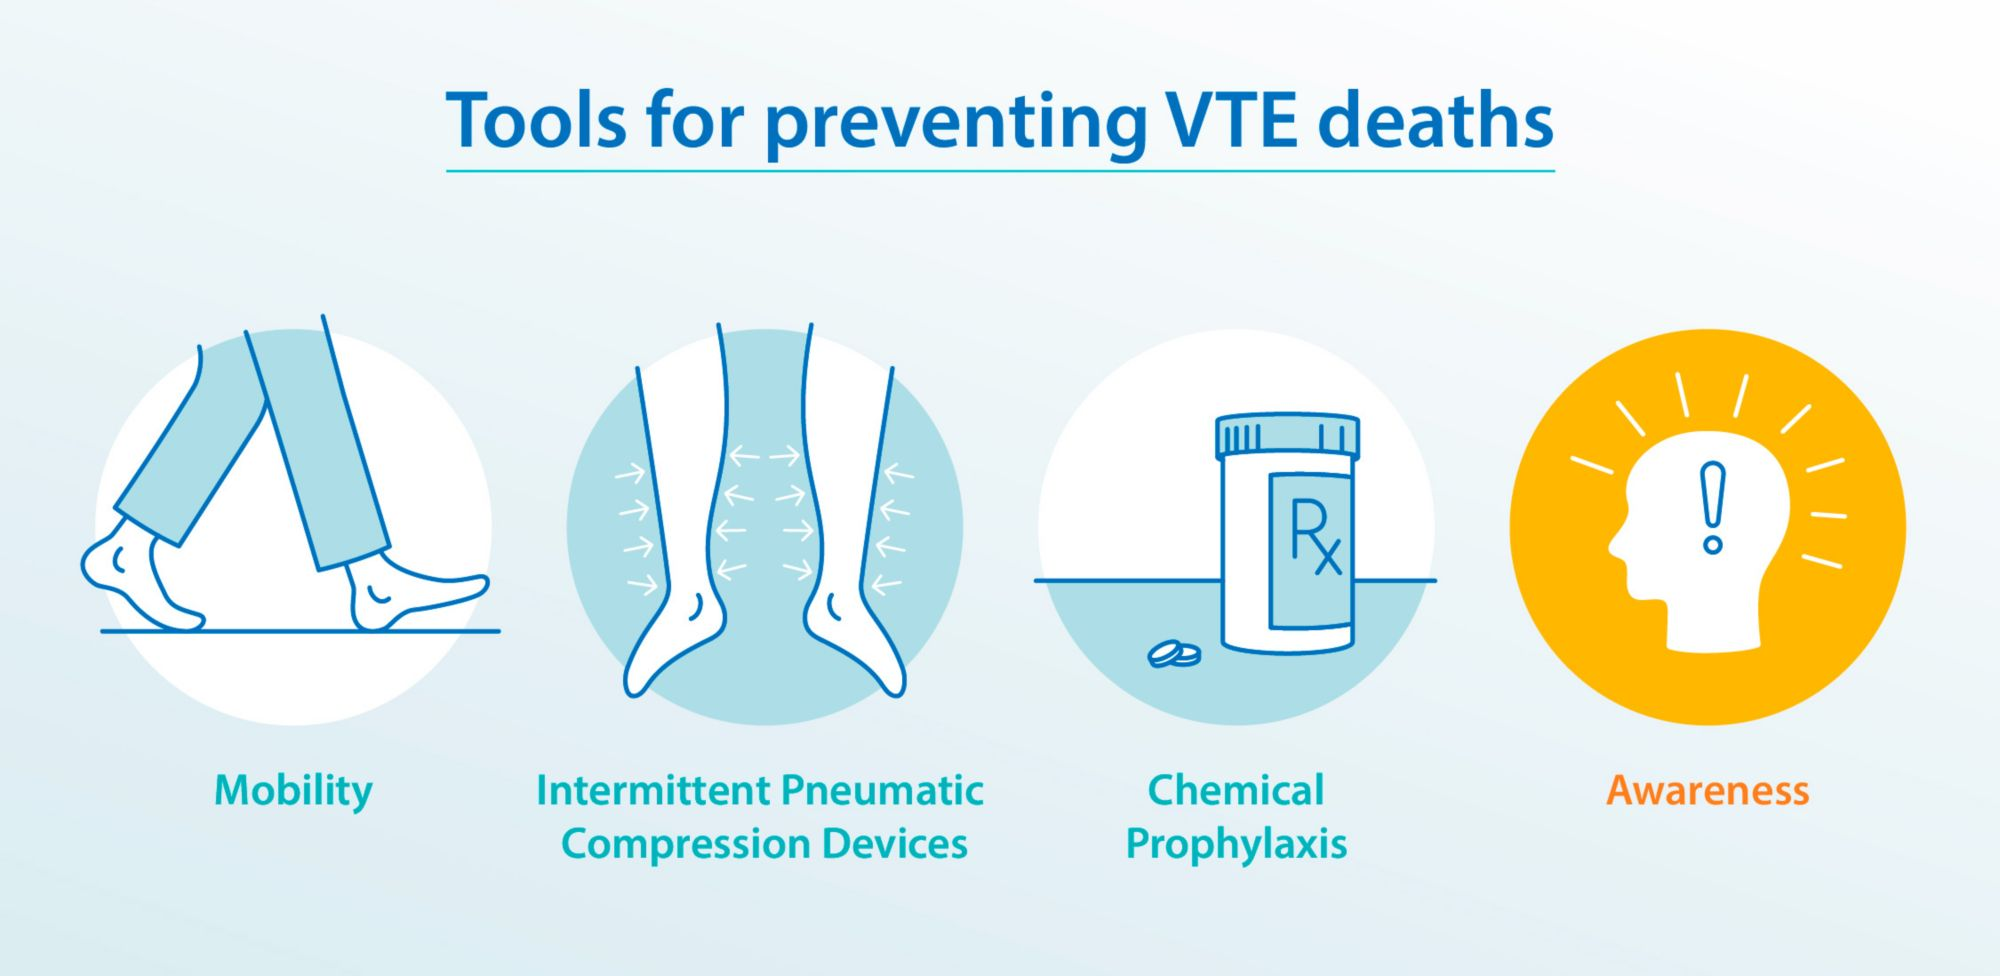 Tools for preventing VTE deaths.